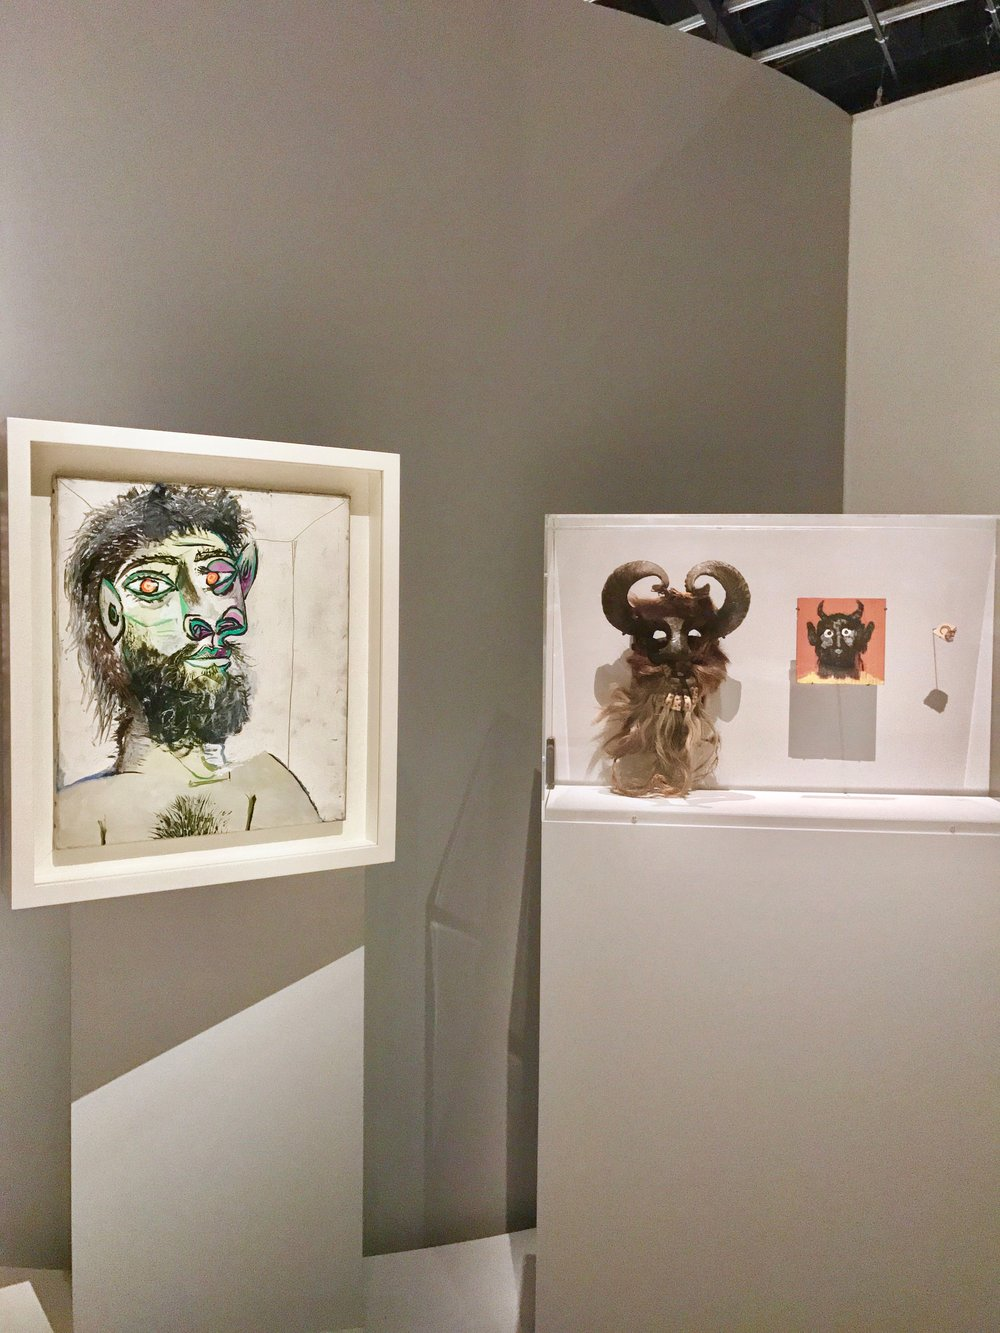 Pablo Picasso, Tête d'homme Barbu, 1979, Mexican Mask from the 20th Century and Pablo Picasso, Carreau Industriel Dècorè au Verso d'une Tête de Faune, 1961.